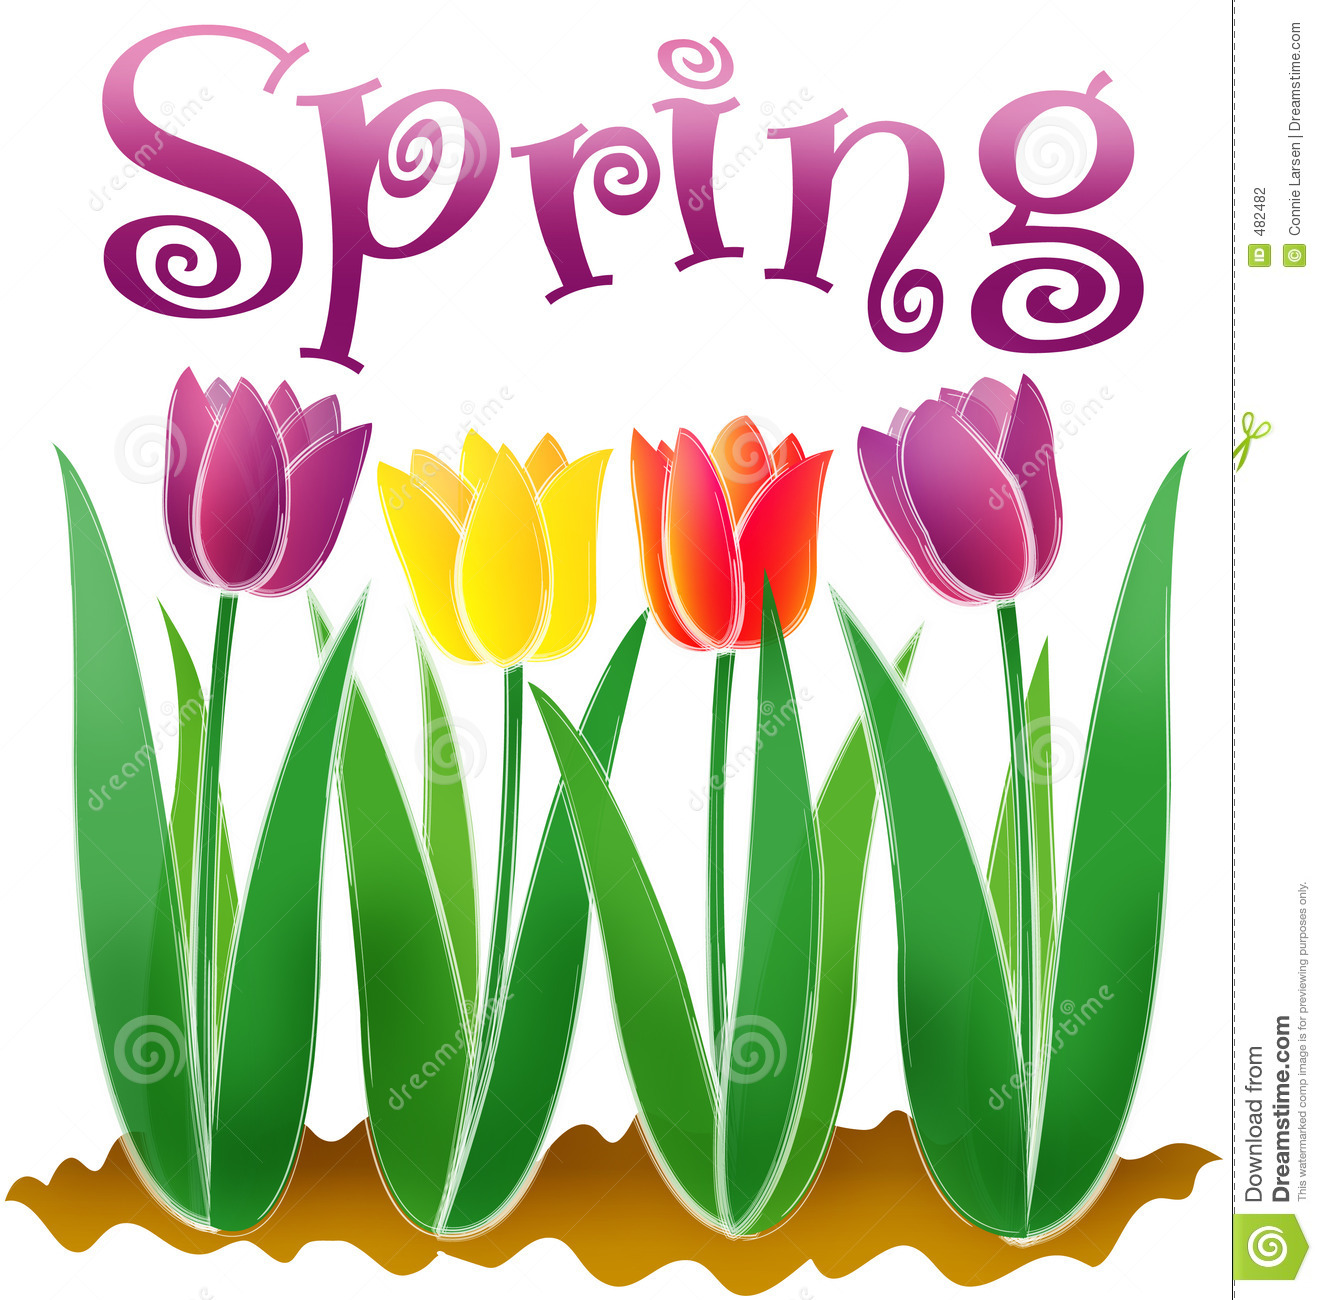 spring weather clipart - photo #16